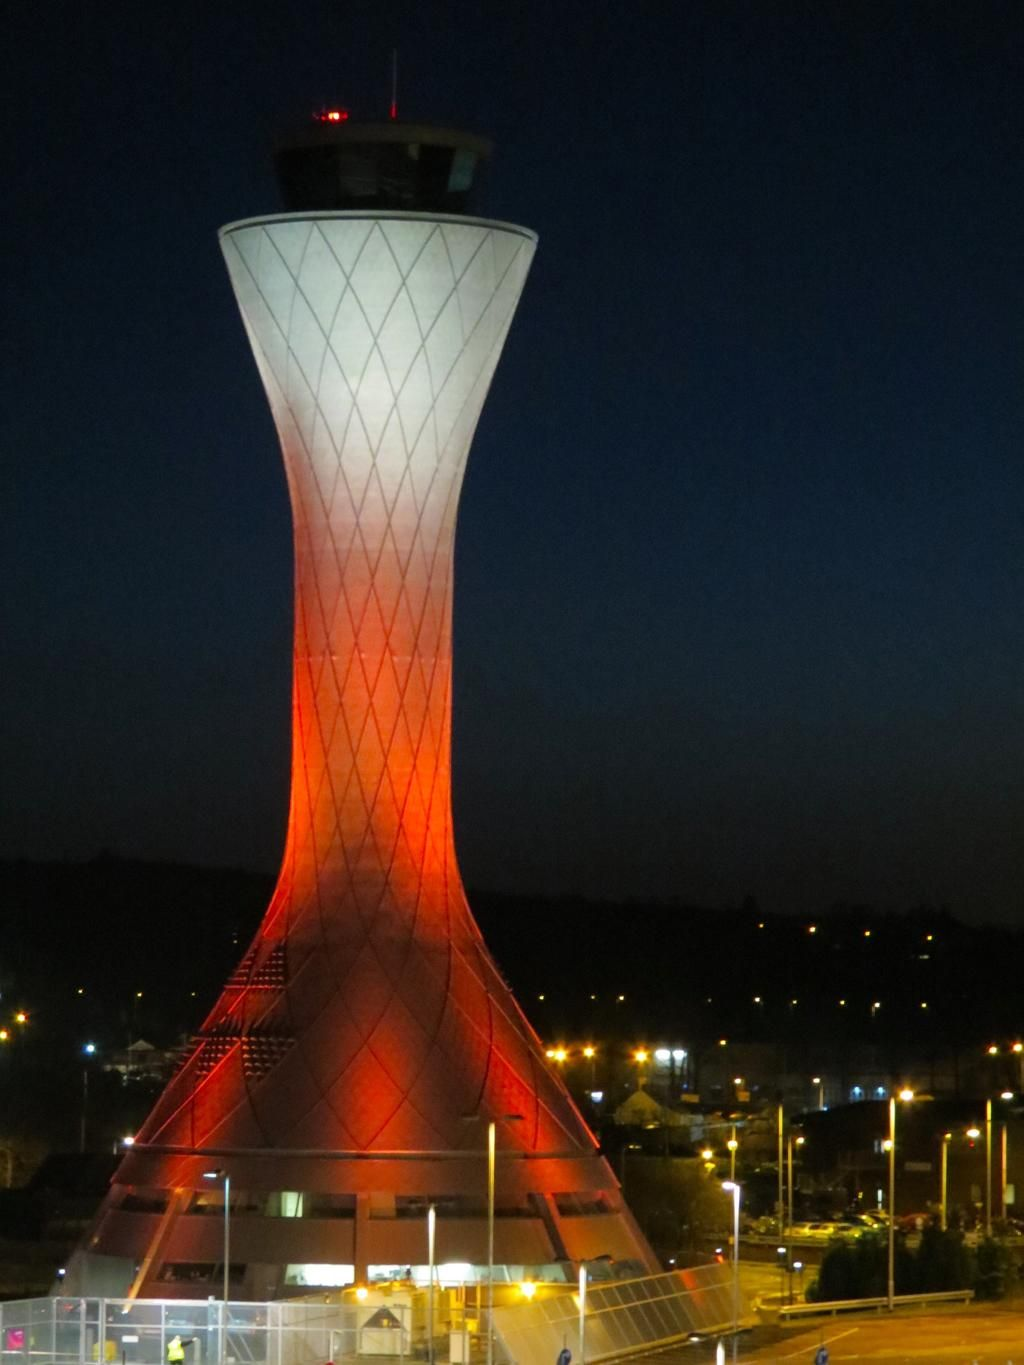 Control Tower at Edinburgh Airport has been lit in orange & Edinburgh Airport on | Edinburgh Tower and Architecture